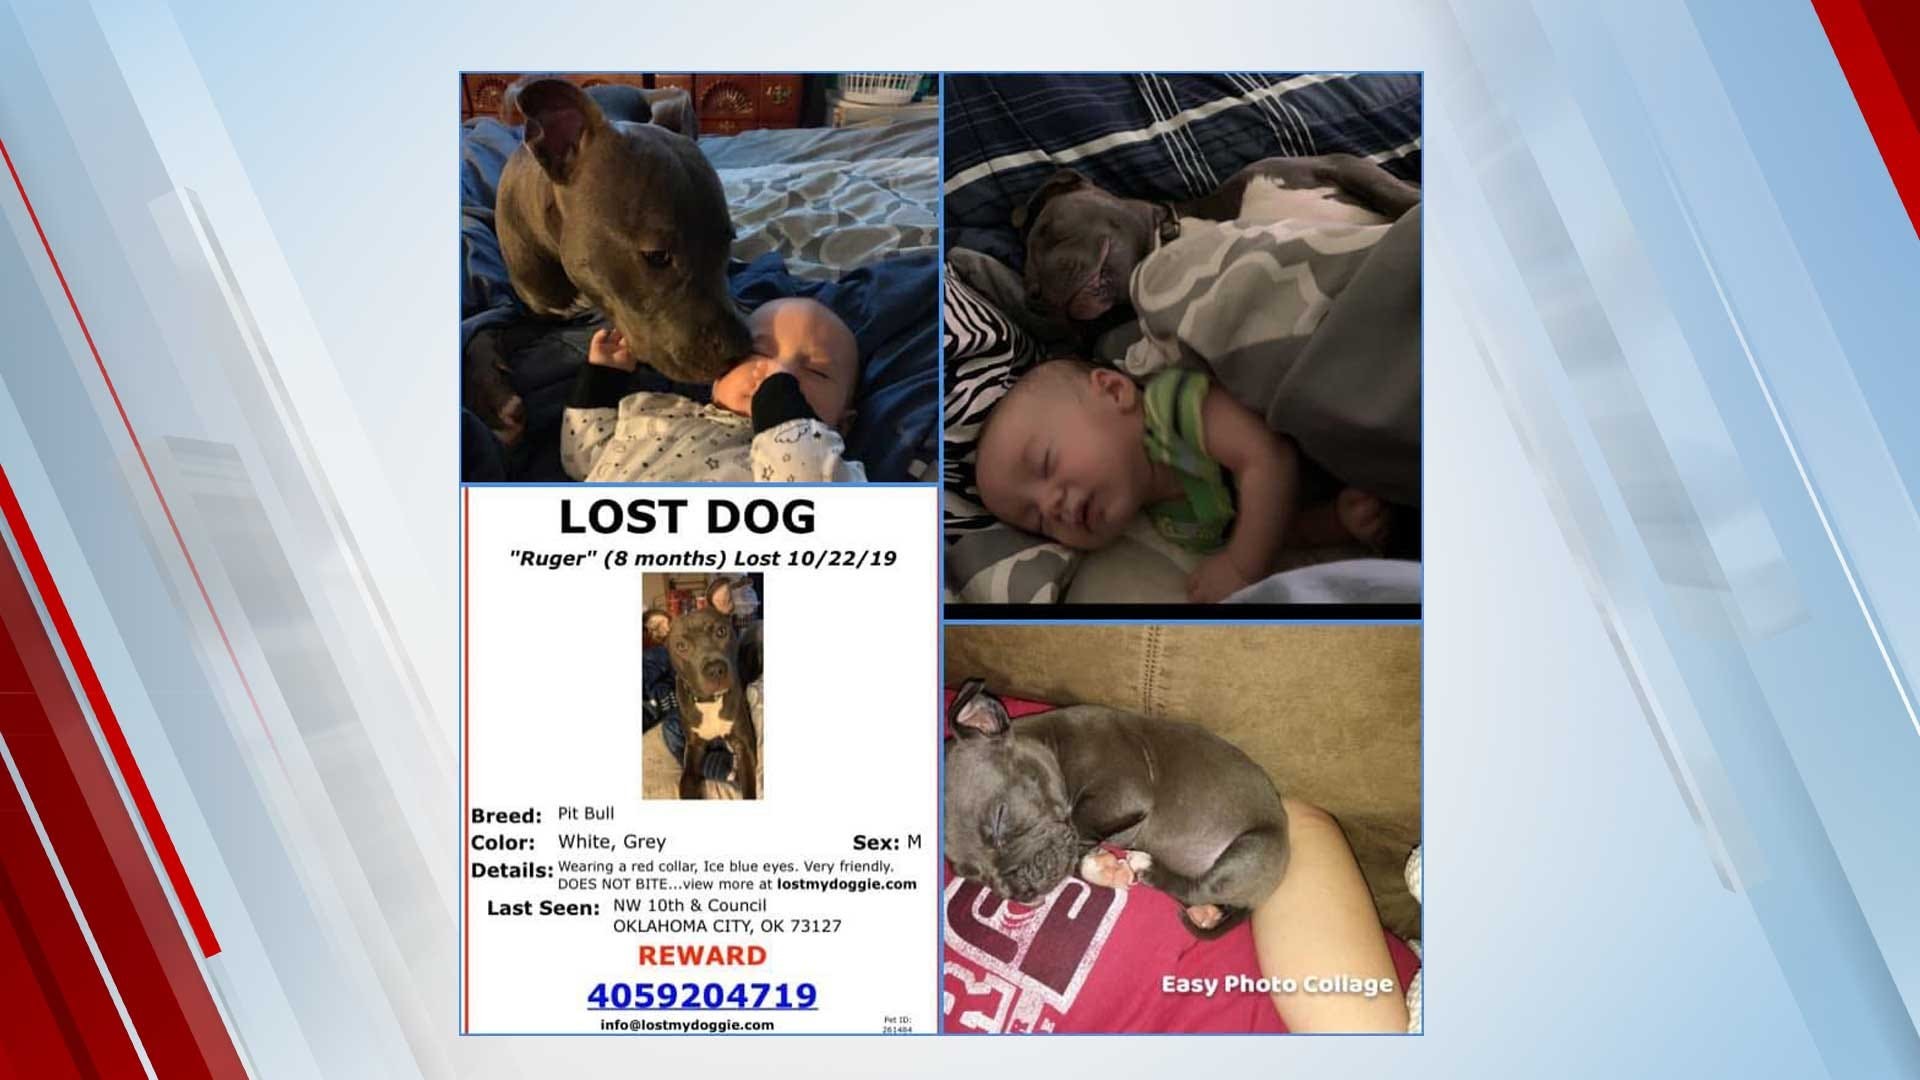 Phone Scammers Targeted OKC Family In Attempt To Get Missing Pet Reward, Woman Says